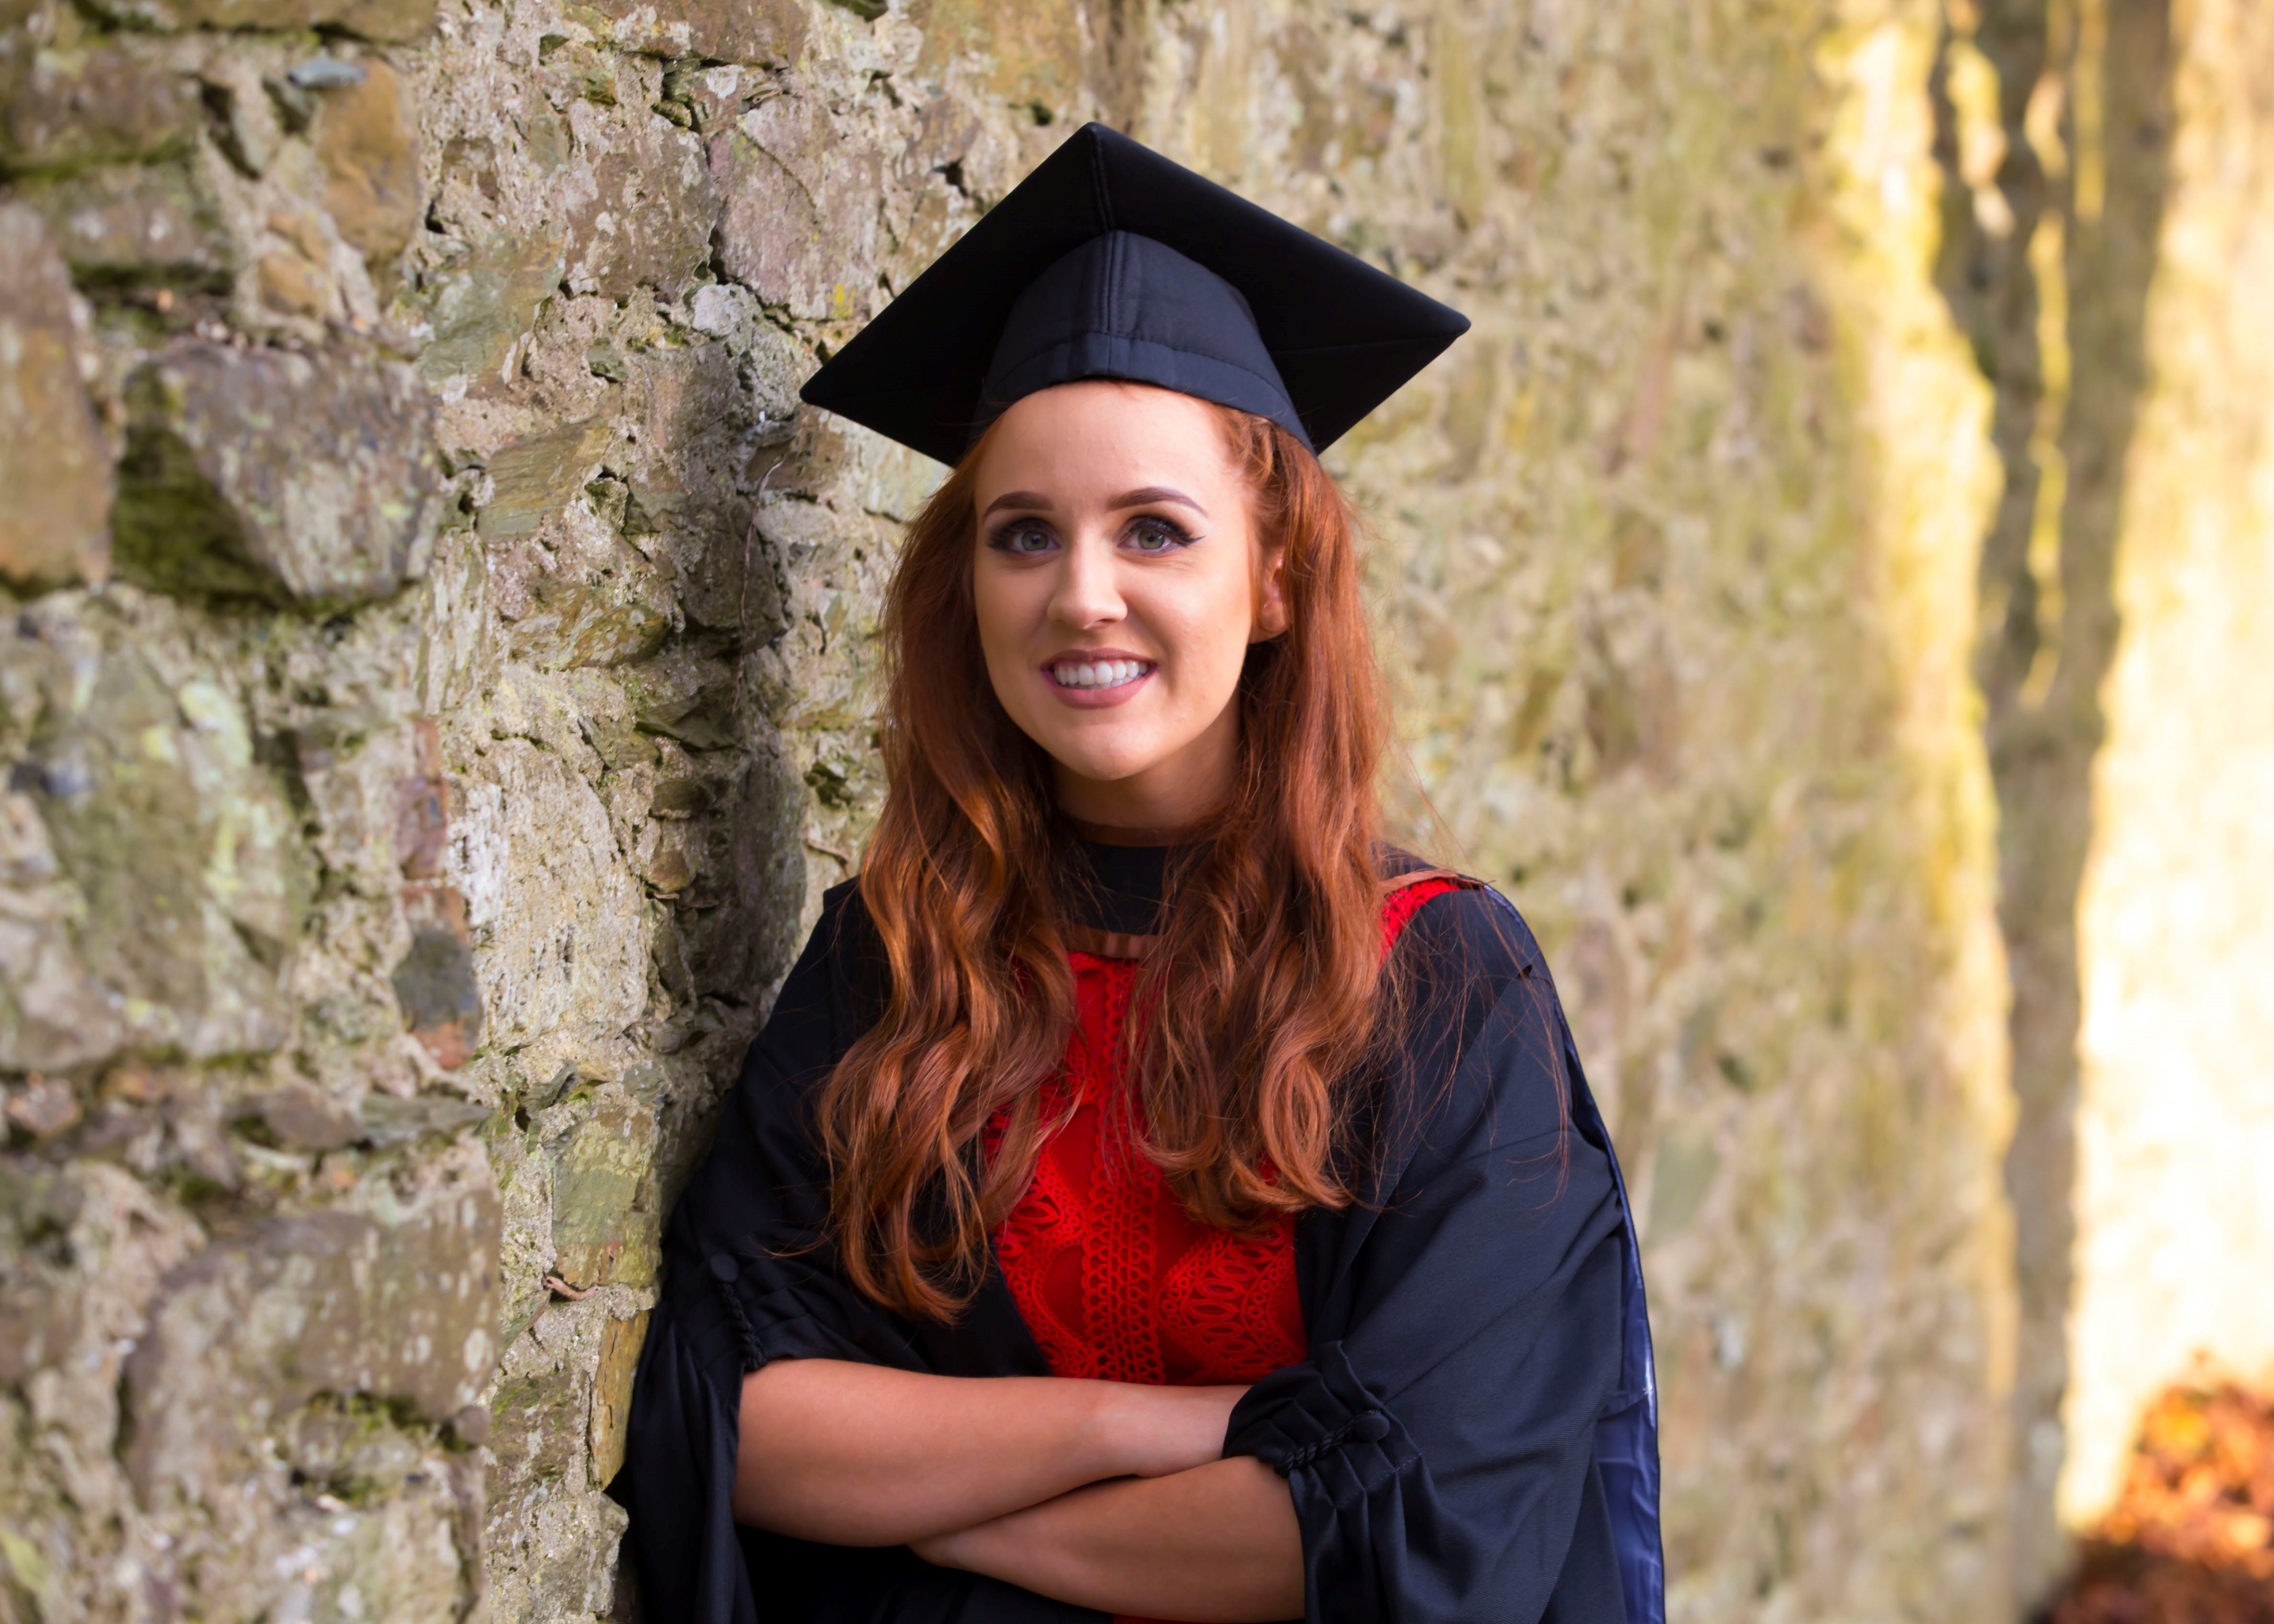 Michelle Enright - Bachelor of Science (Honours) in Intellectual Disability Nursing